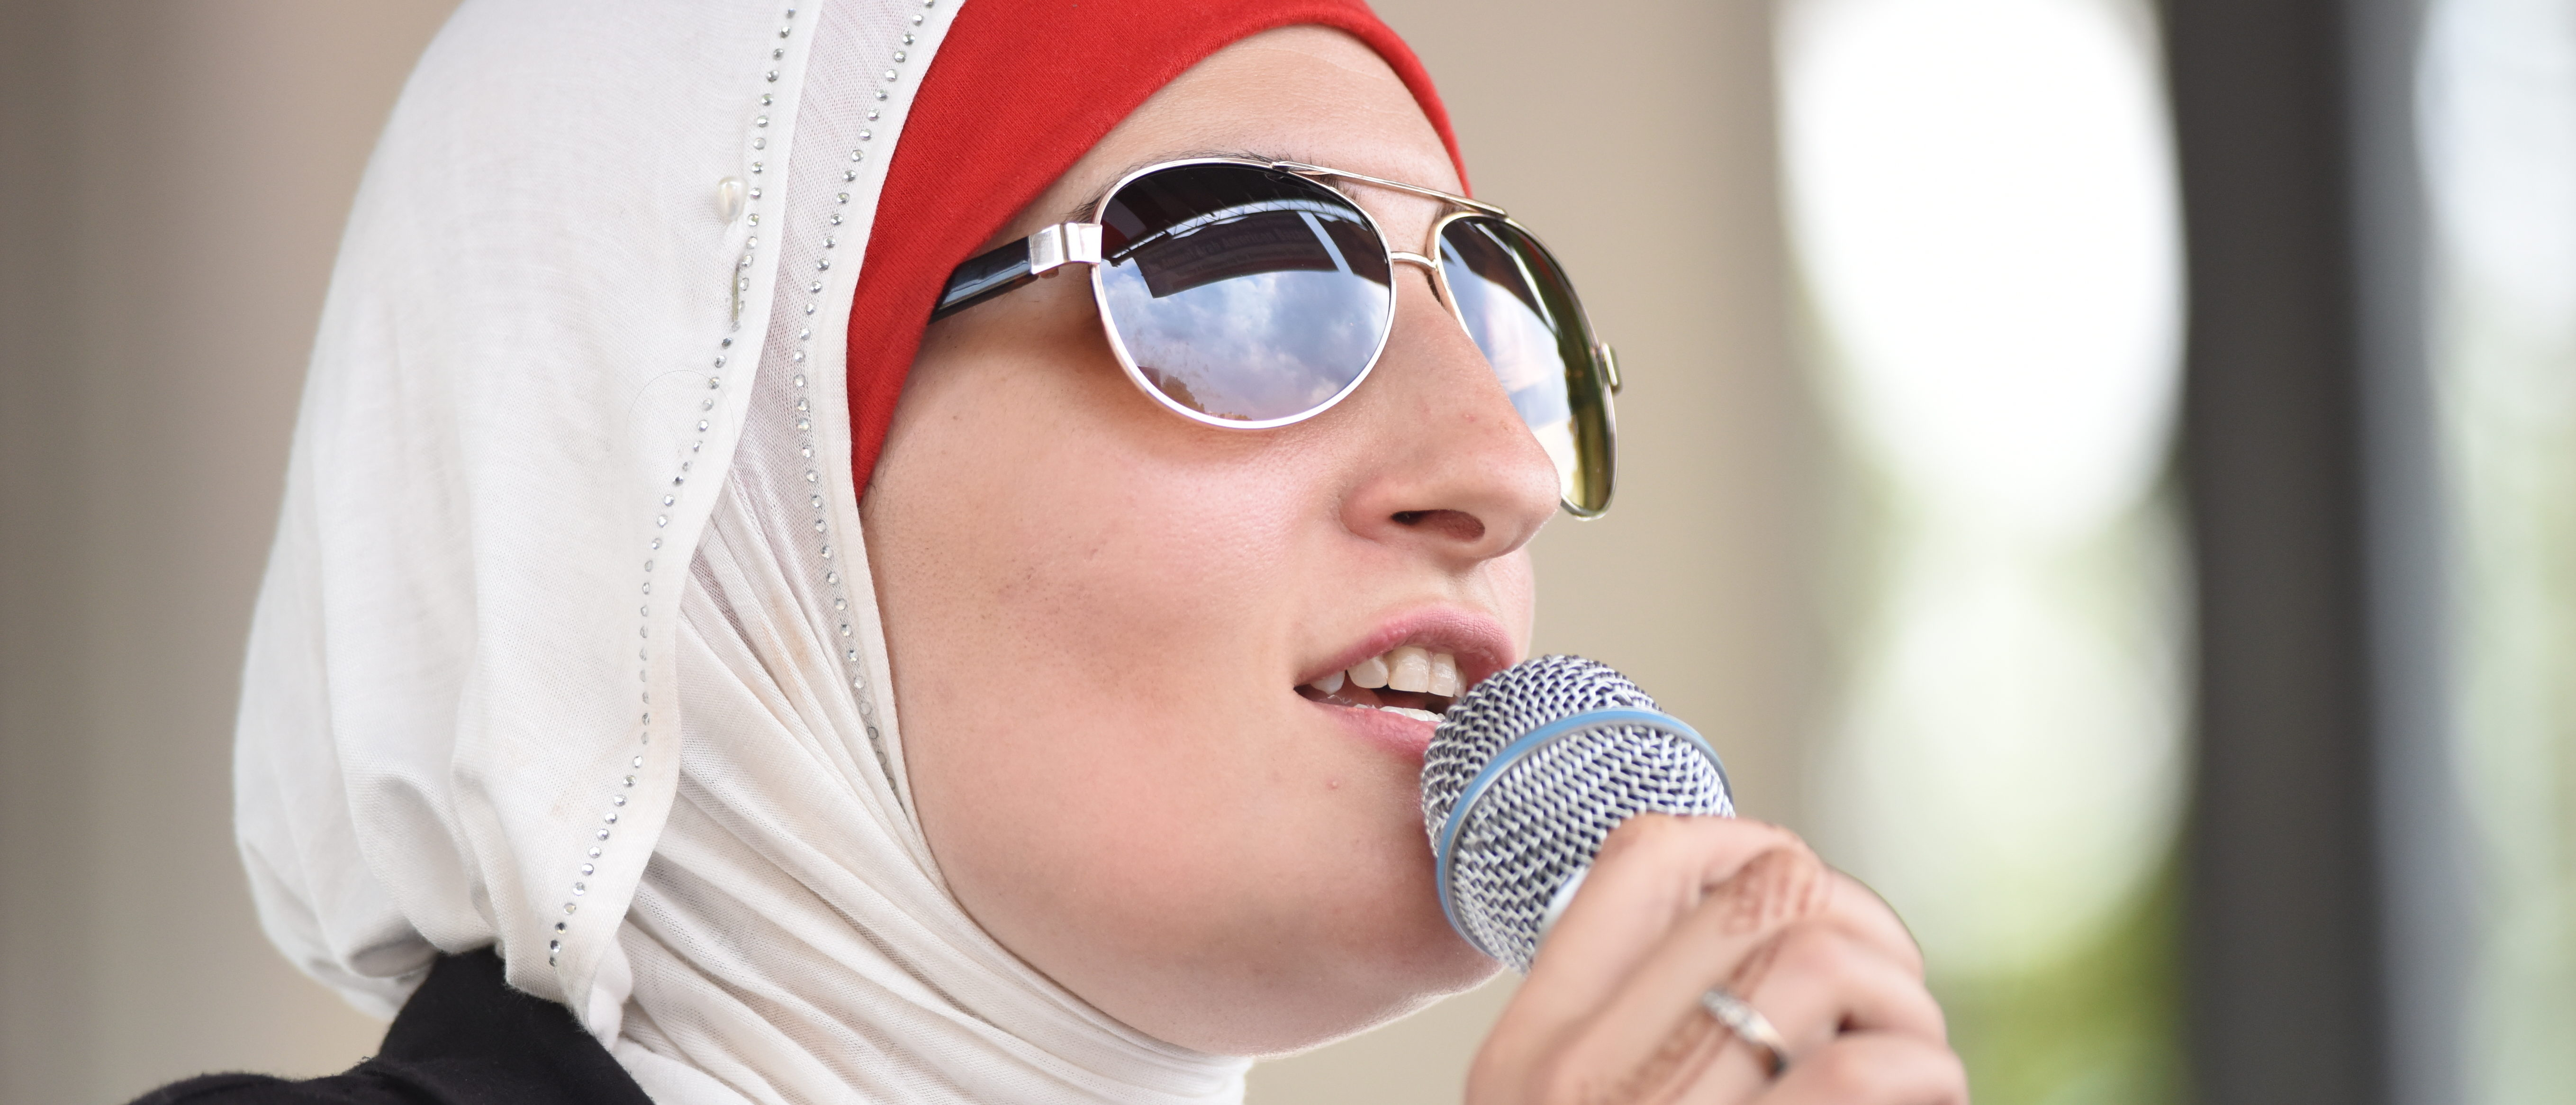 Linda Sarsour Falls For Parody Congressman Twitter Account